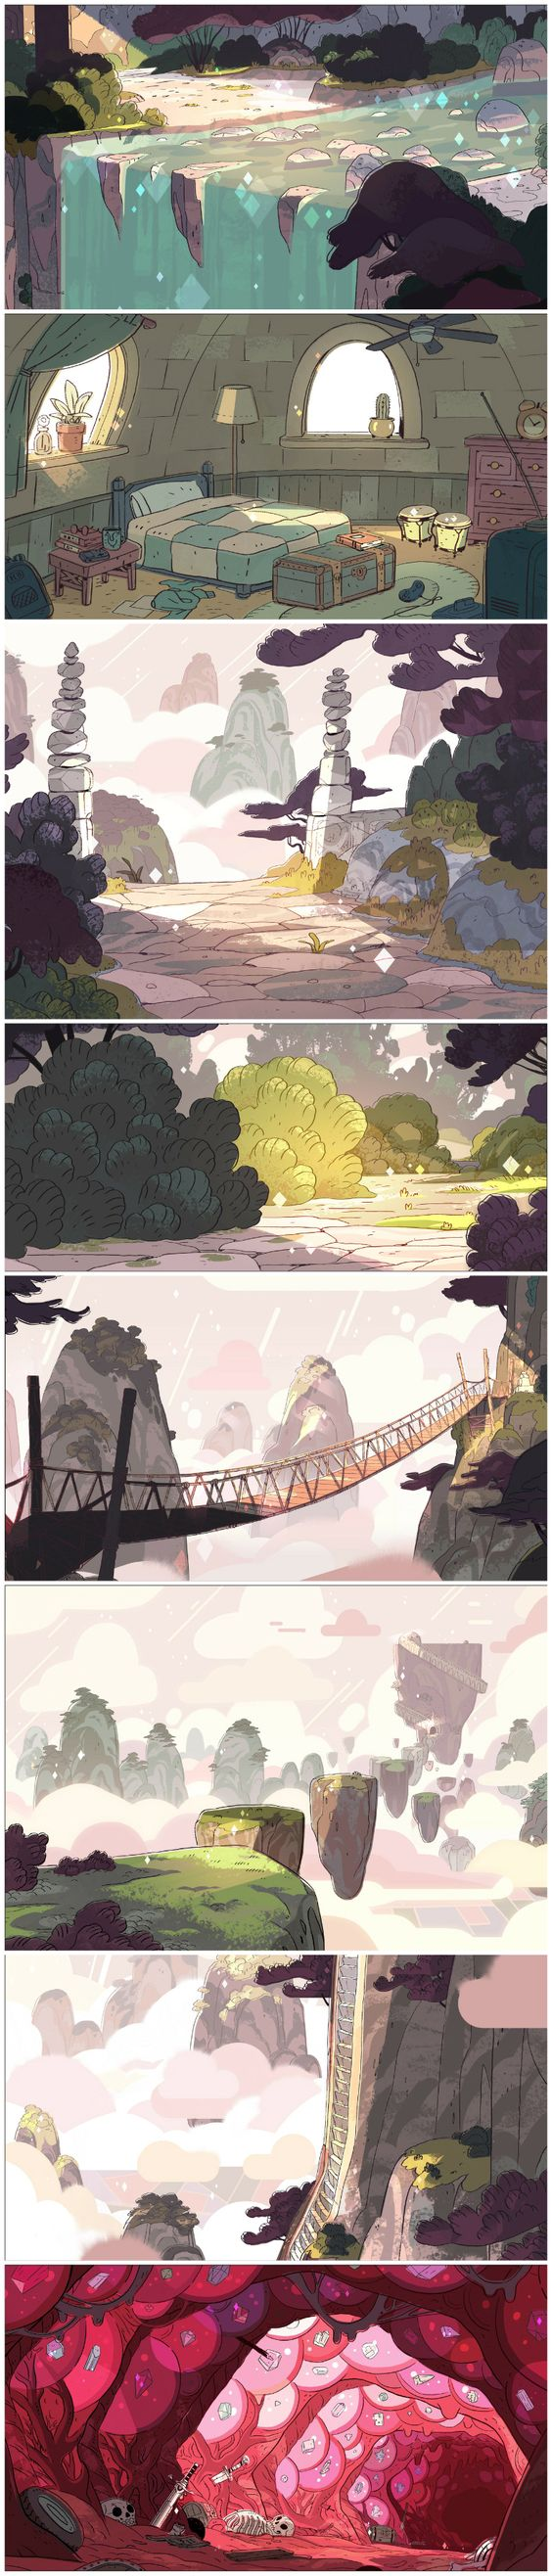 "A selection of Backgrounds from the Steven Universe episode: ""Giant Woman""      Art Direction: Kevin Dart      Design: Sam Bosma      Paint: Elle Michalka, Jasmin Lai:"